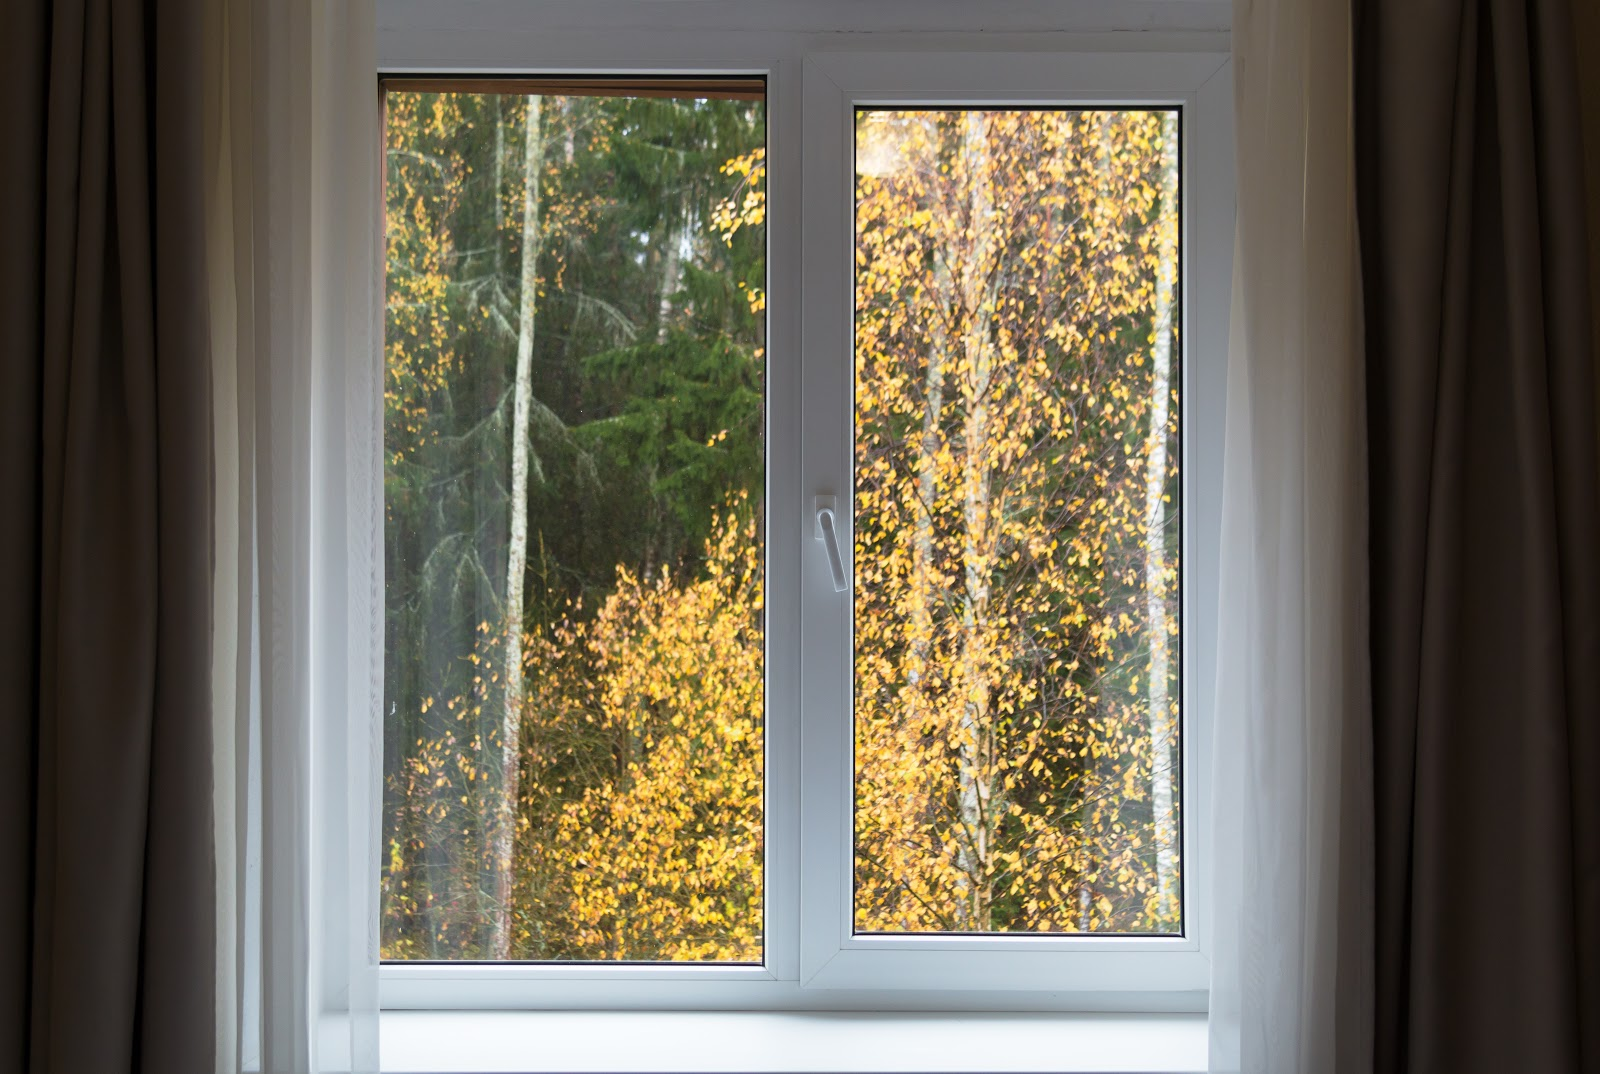 A casement window with charcoal drapes pushed aside, looking out into an autumn forest